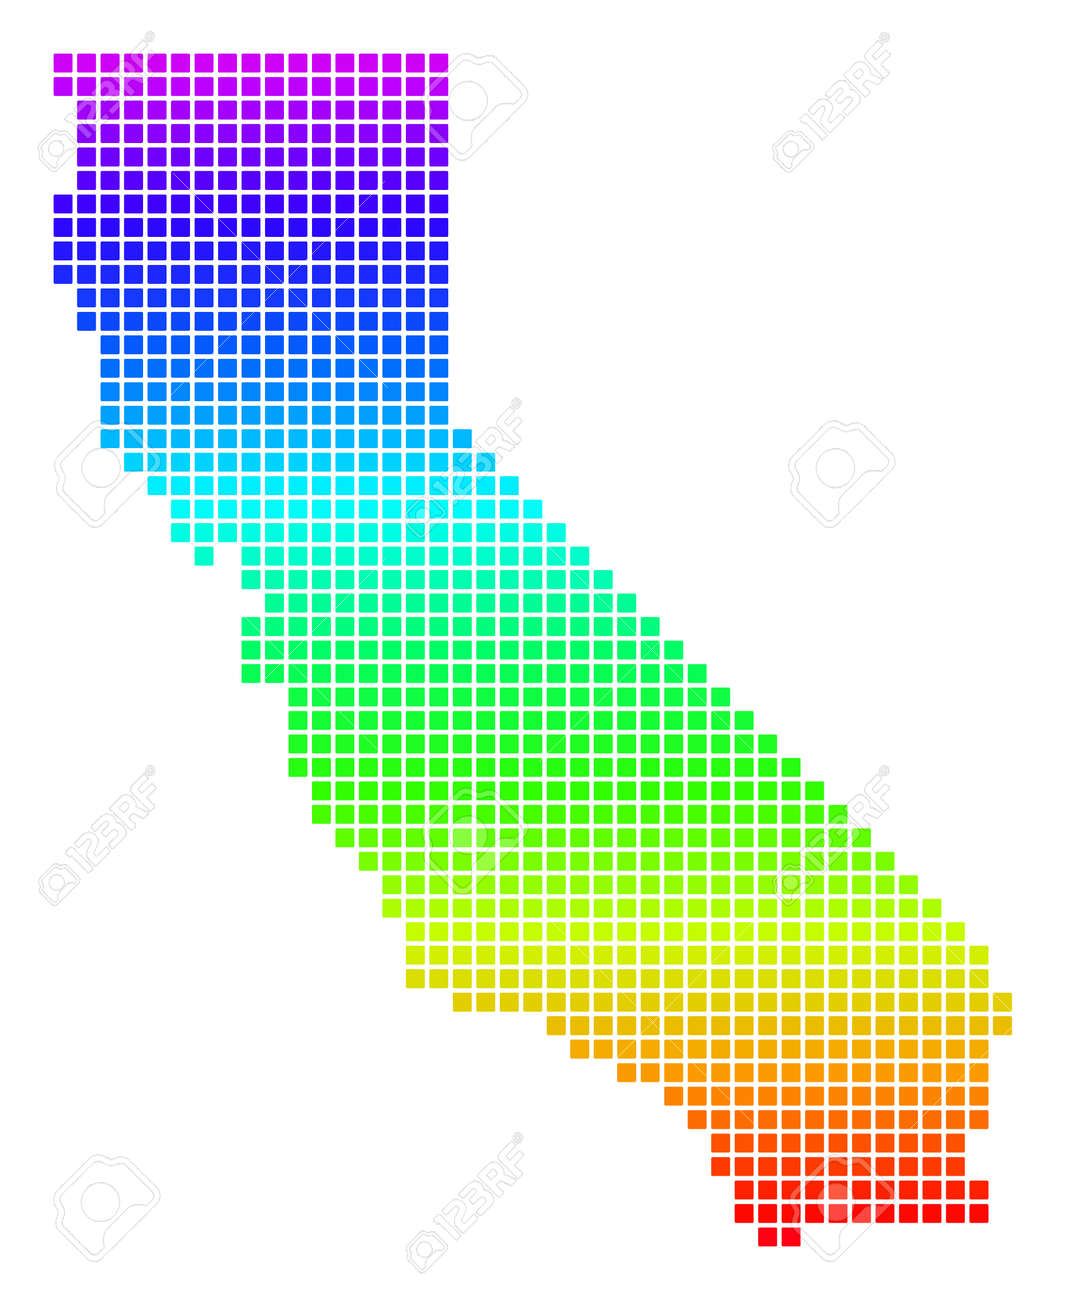 Colored Rainbow Dot California Map. Vector geographic map in.. on koppen climate map california, entertainment map of california, show map of california, travel map of california, demographic map of california, gis map of california, transportation map of california, education map of california, large map of california, whole map of california, geopolitical map of california, draw a map of california, physical characteristics of california, the map of california, topographic map of california, artistic map of california, military map of california, counties of california, geologic map of california, racial map of california,